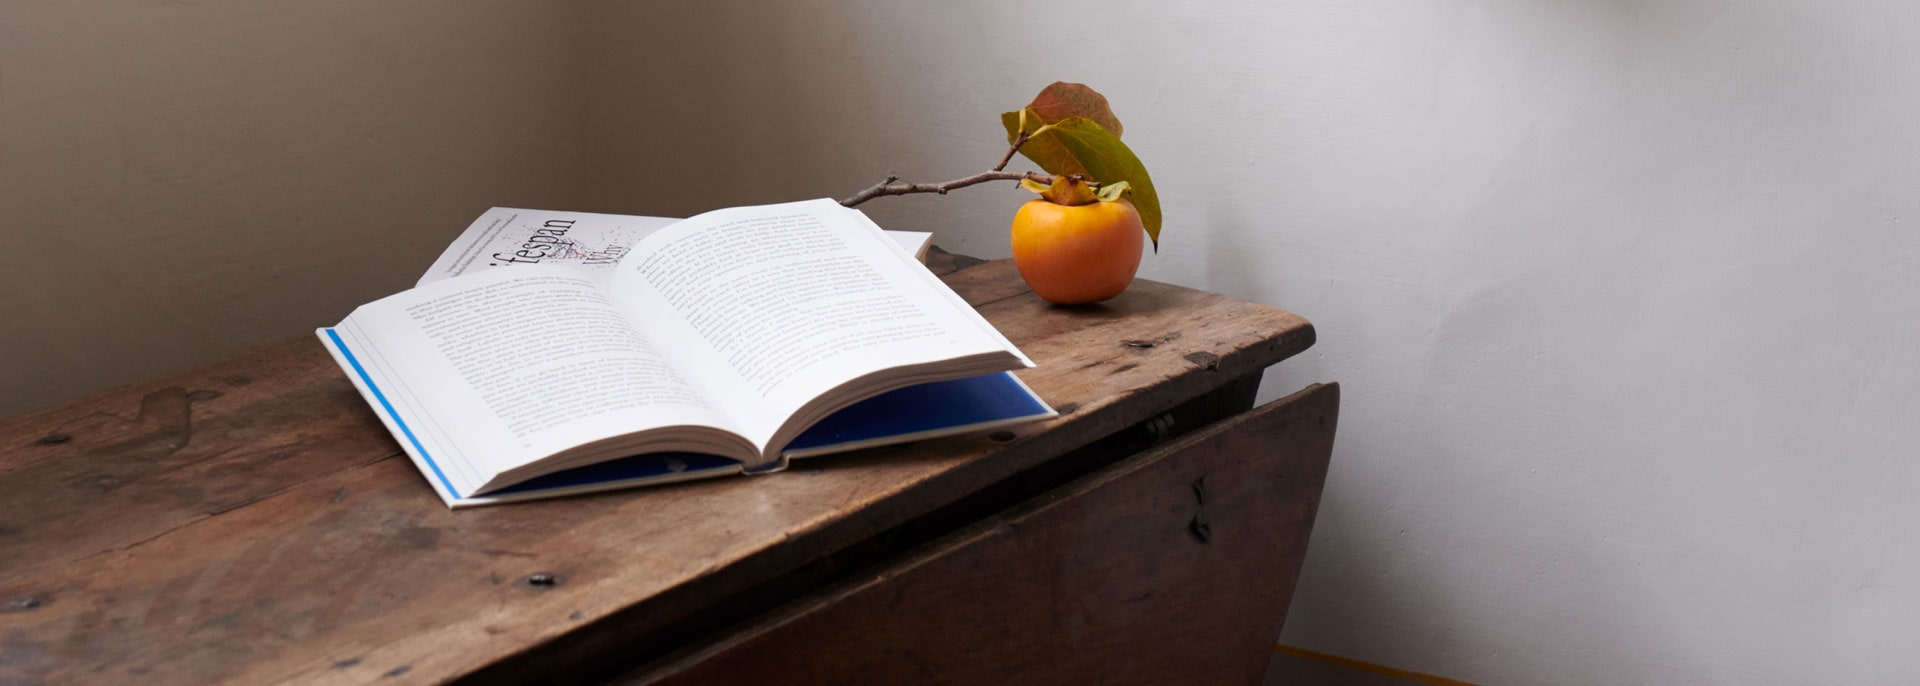 A book open on a table with a piece of fruit and a branch beside it.